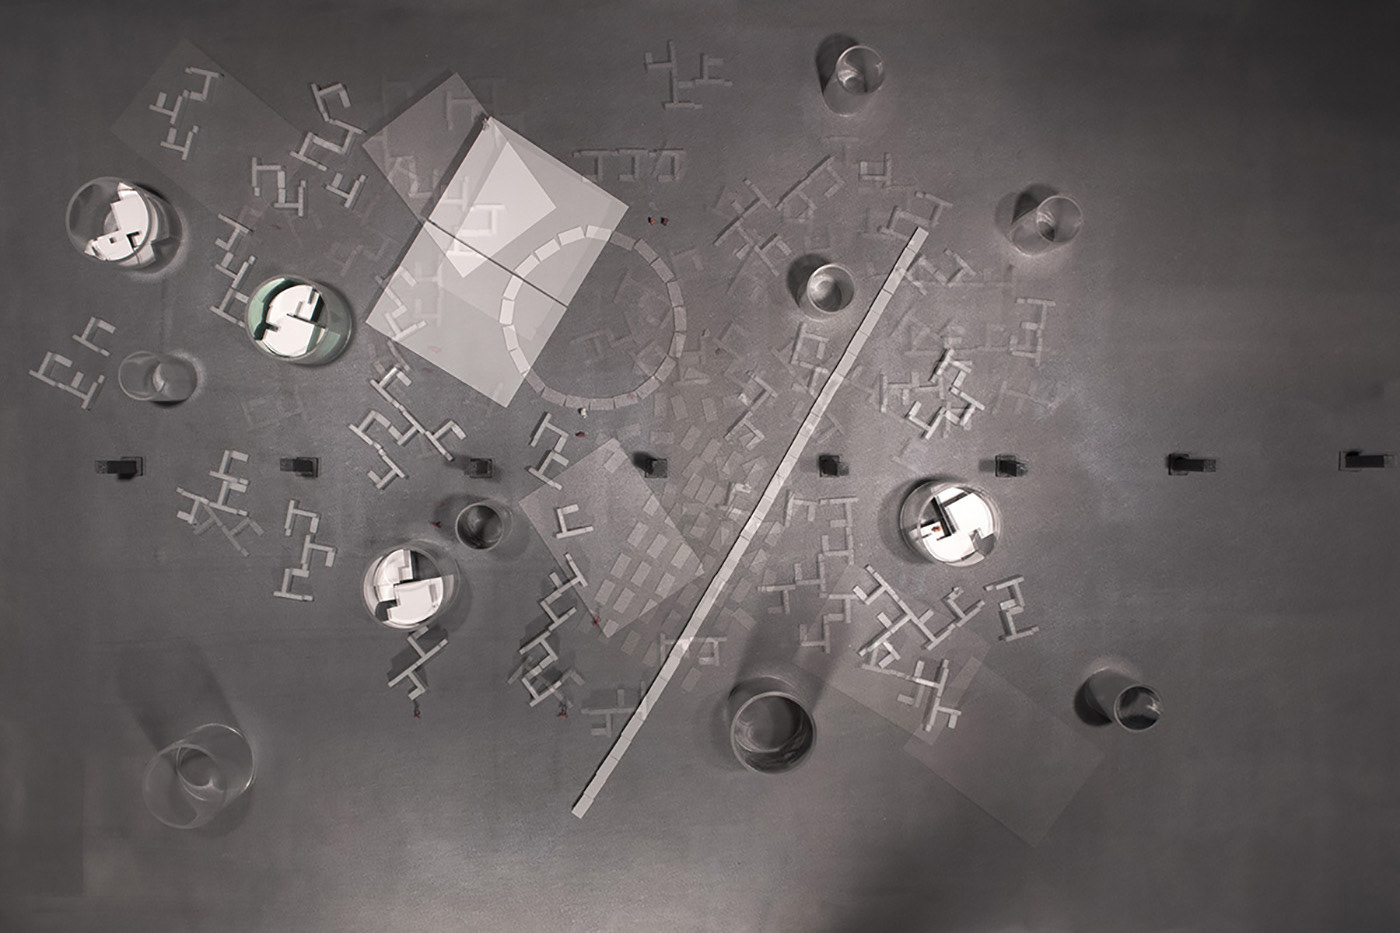 Library Concept Spatial strategy Third Place Master Thesis knowledge negociation and encounter